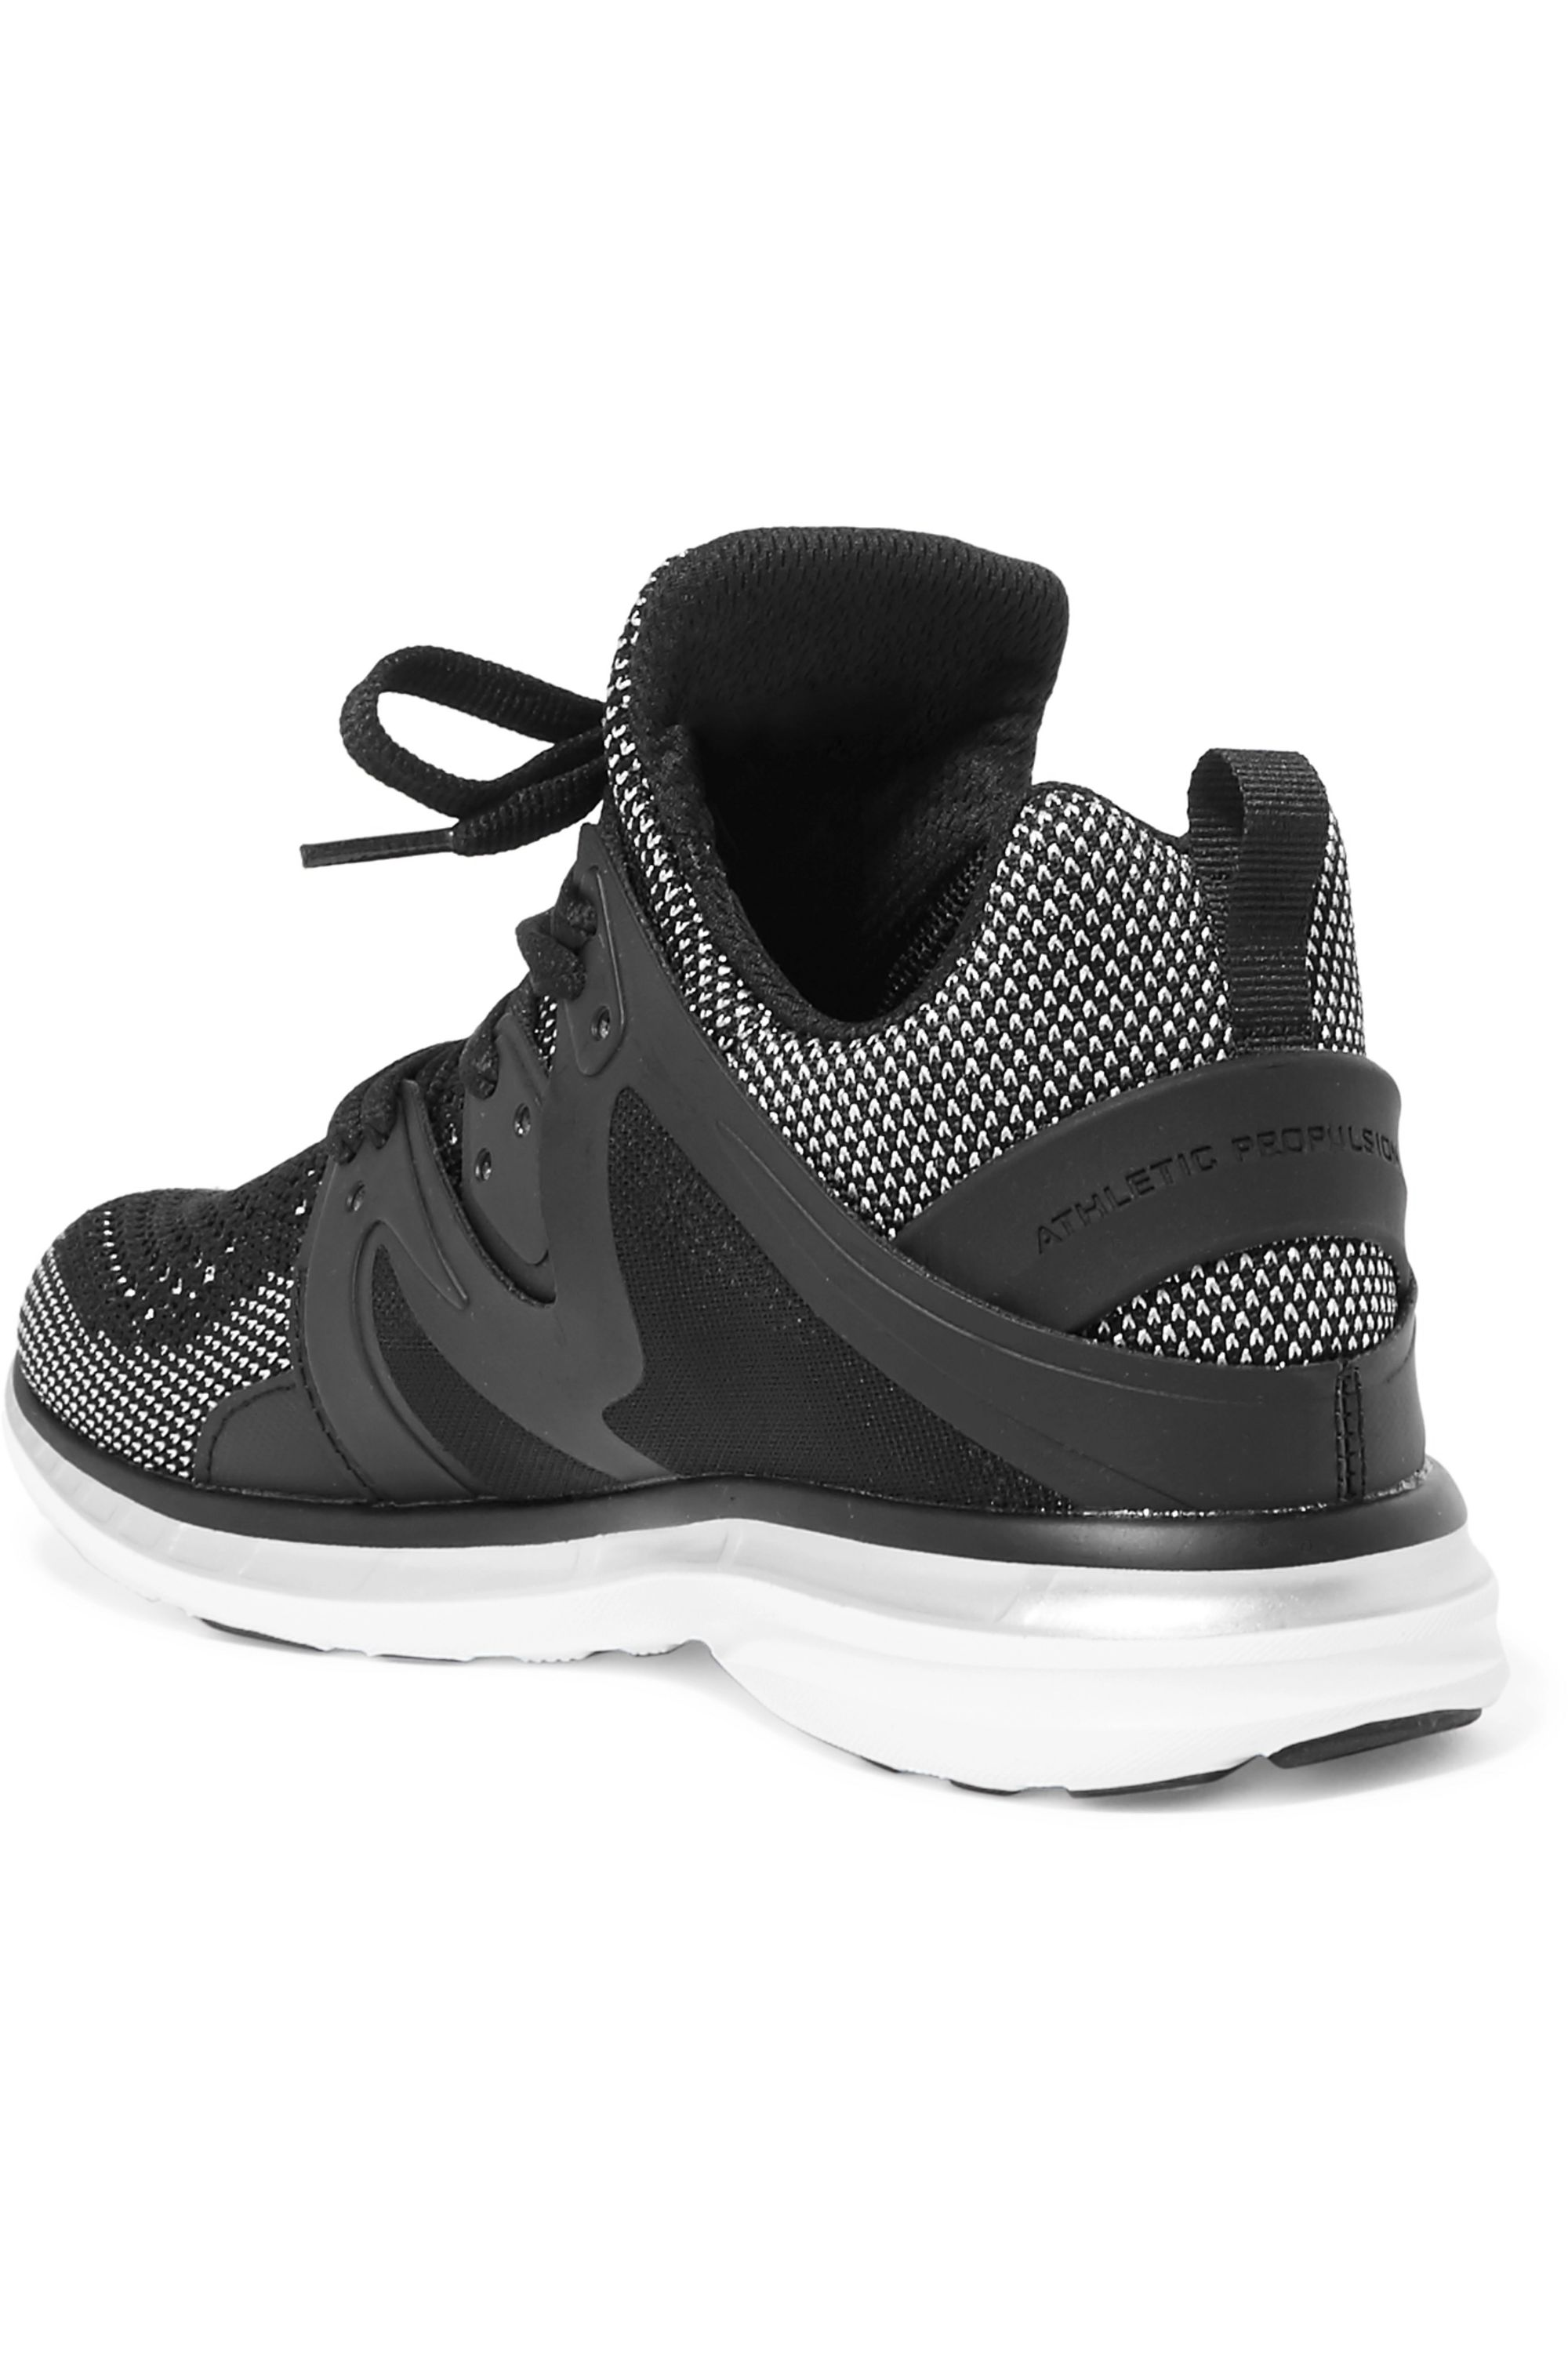 APL Athletic Propulsion Labs Ascend TechLoom mesh sneakers